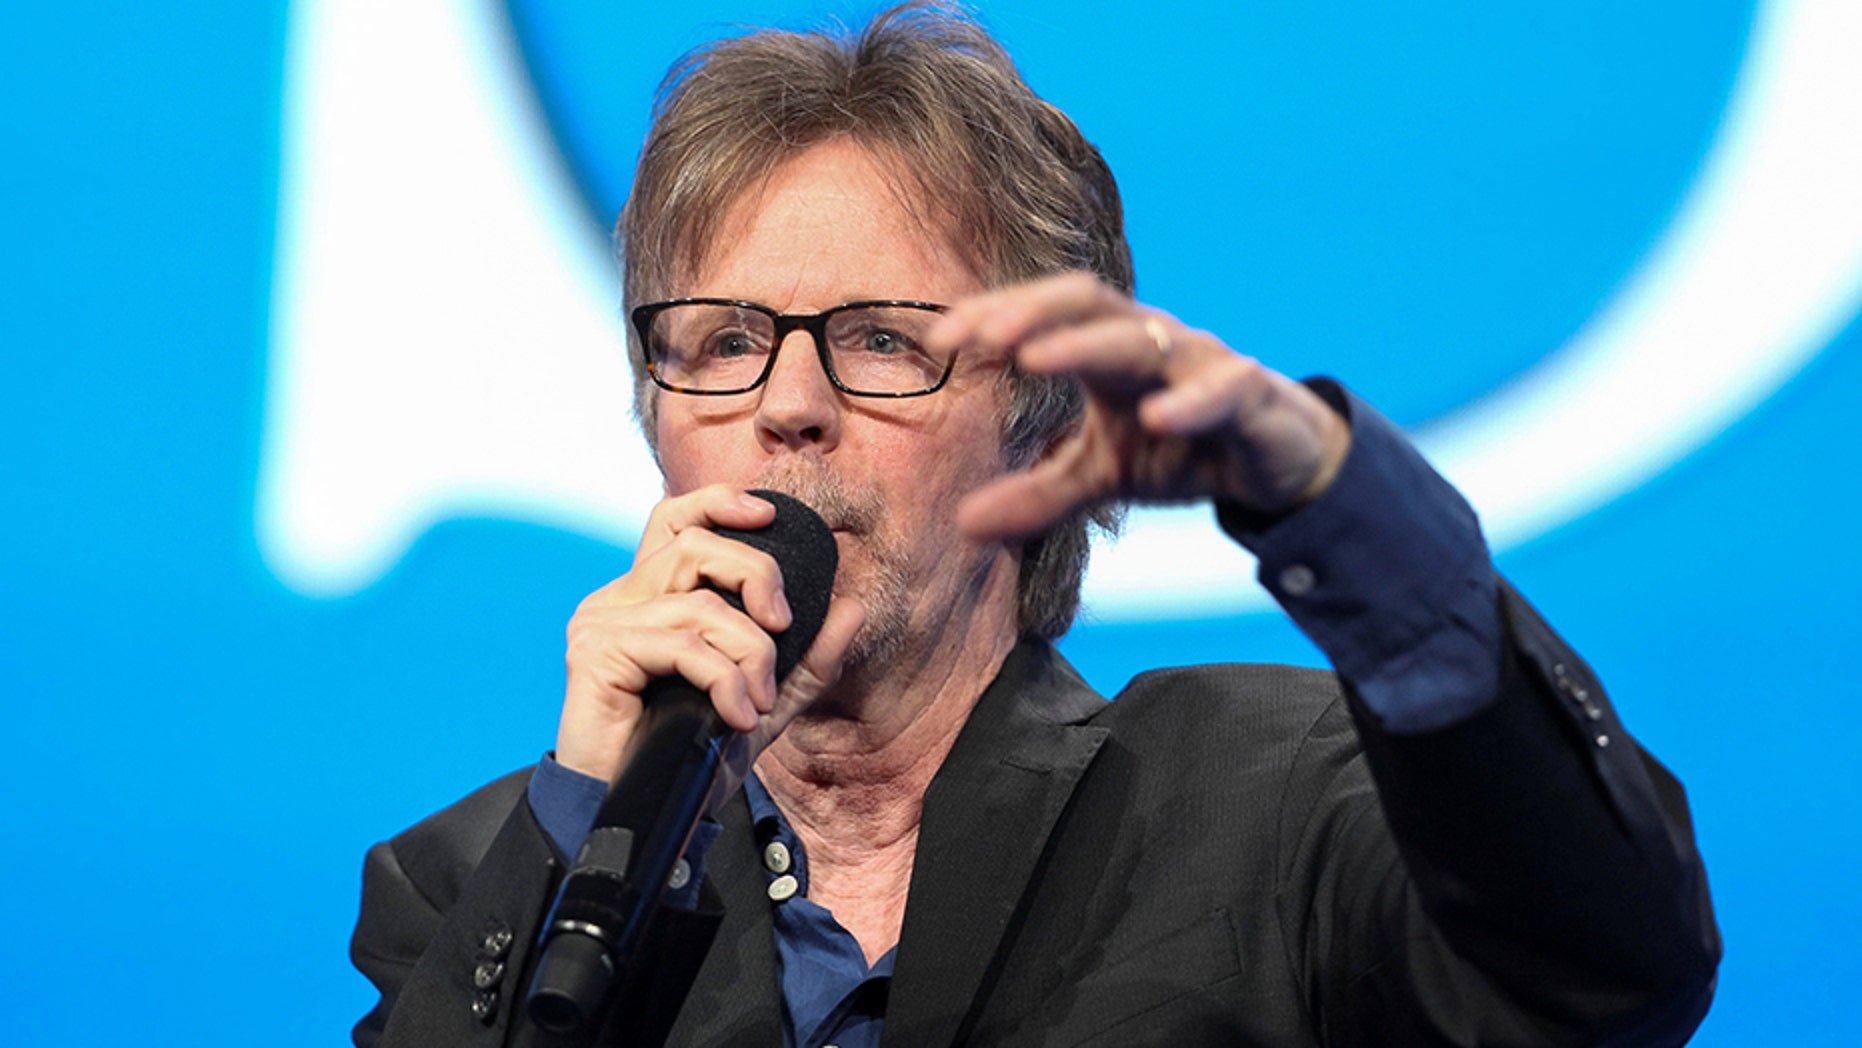 Comedian Dana Carvey recalled his experiences with former President George H.W. Bush in a Monday night talk show appearance.